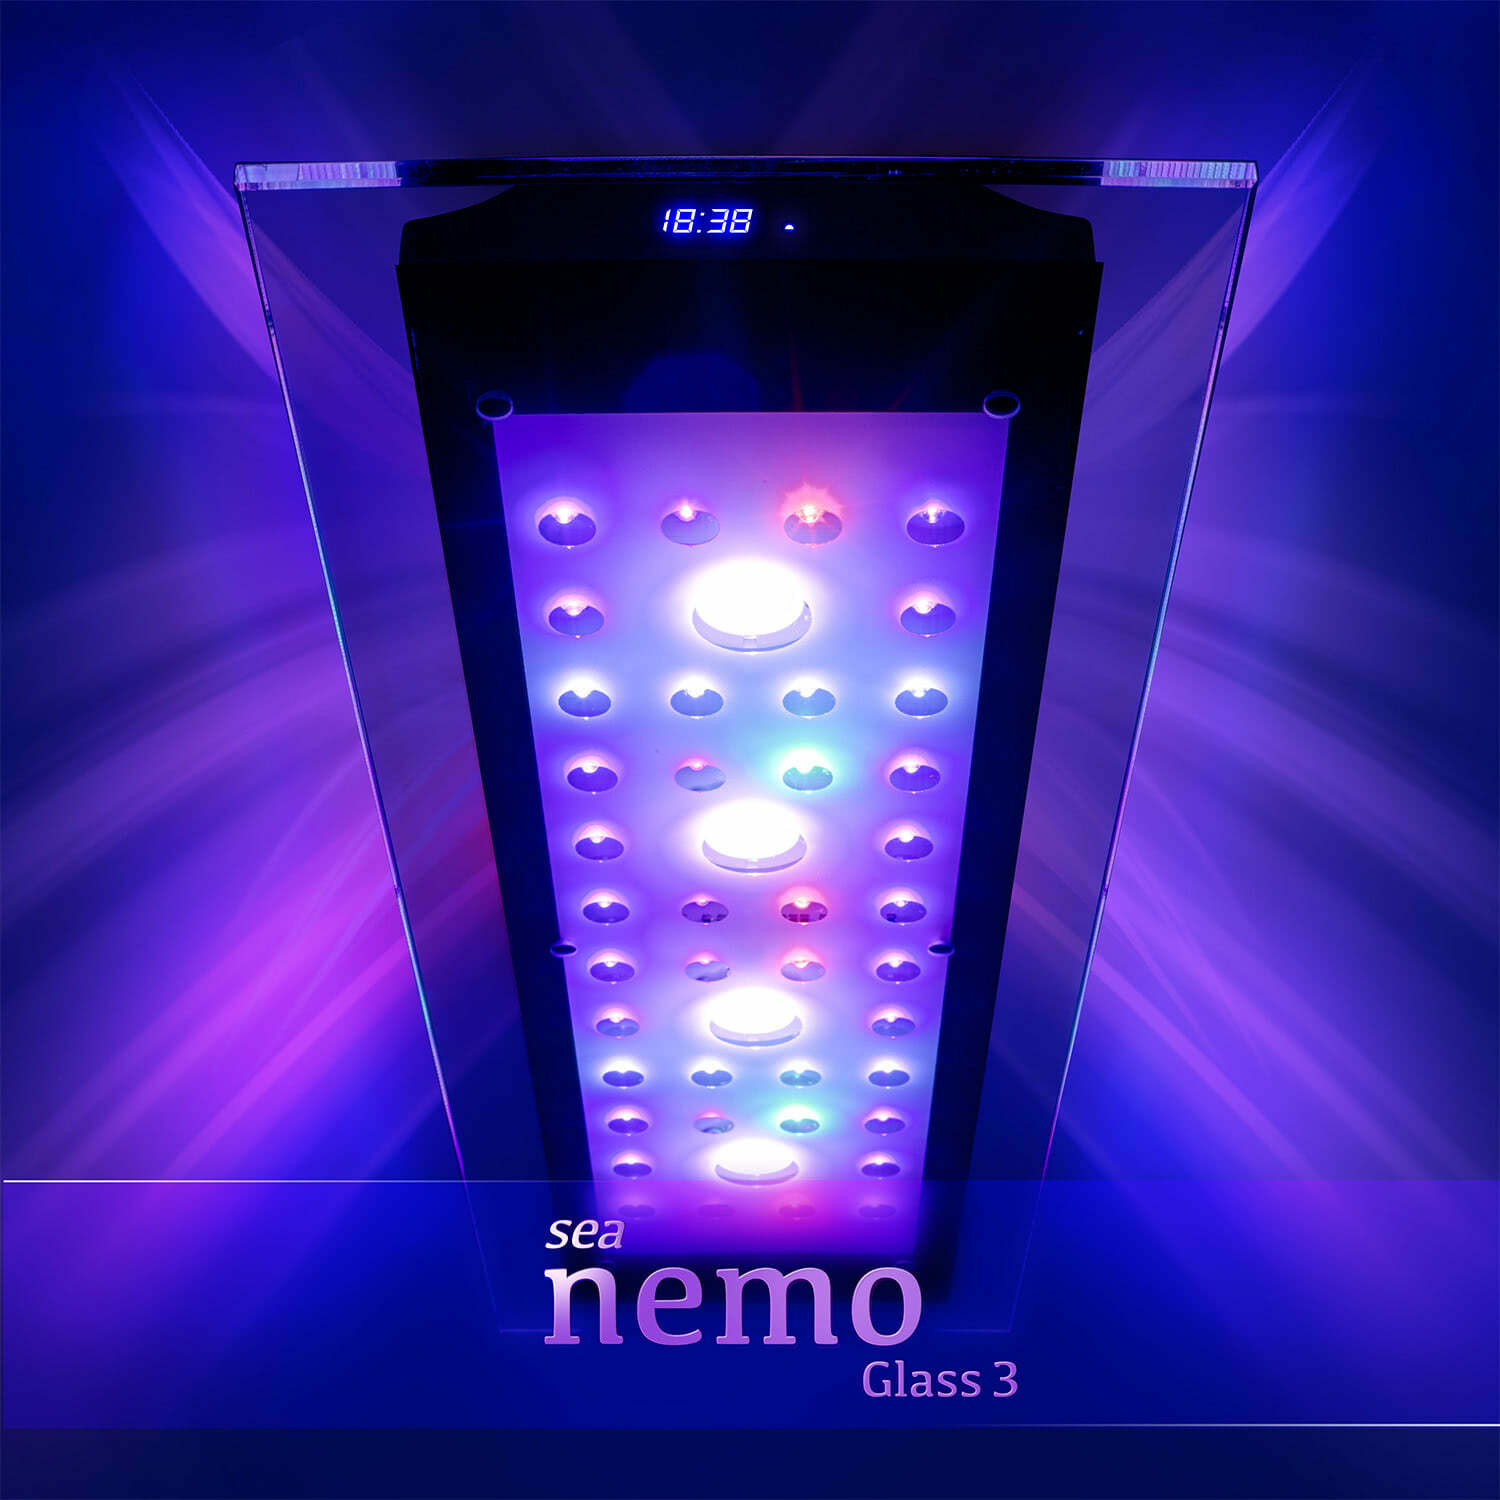 sea nemo glass 3 led korallen meerwasser aquarium beleuchtung lampe esmart. Black Bedroom Furniture Sets. Home Design Ideas